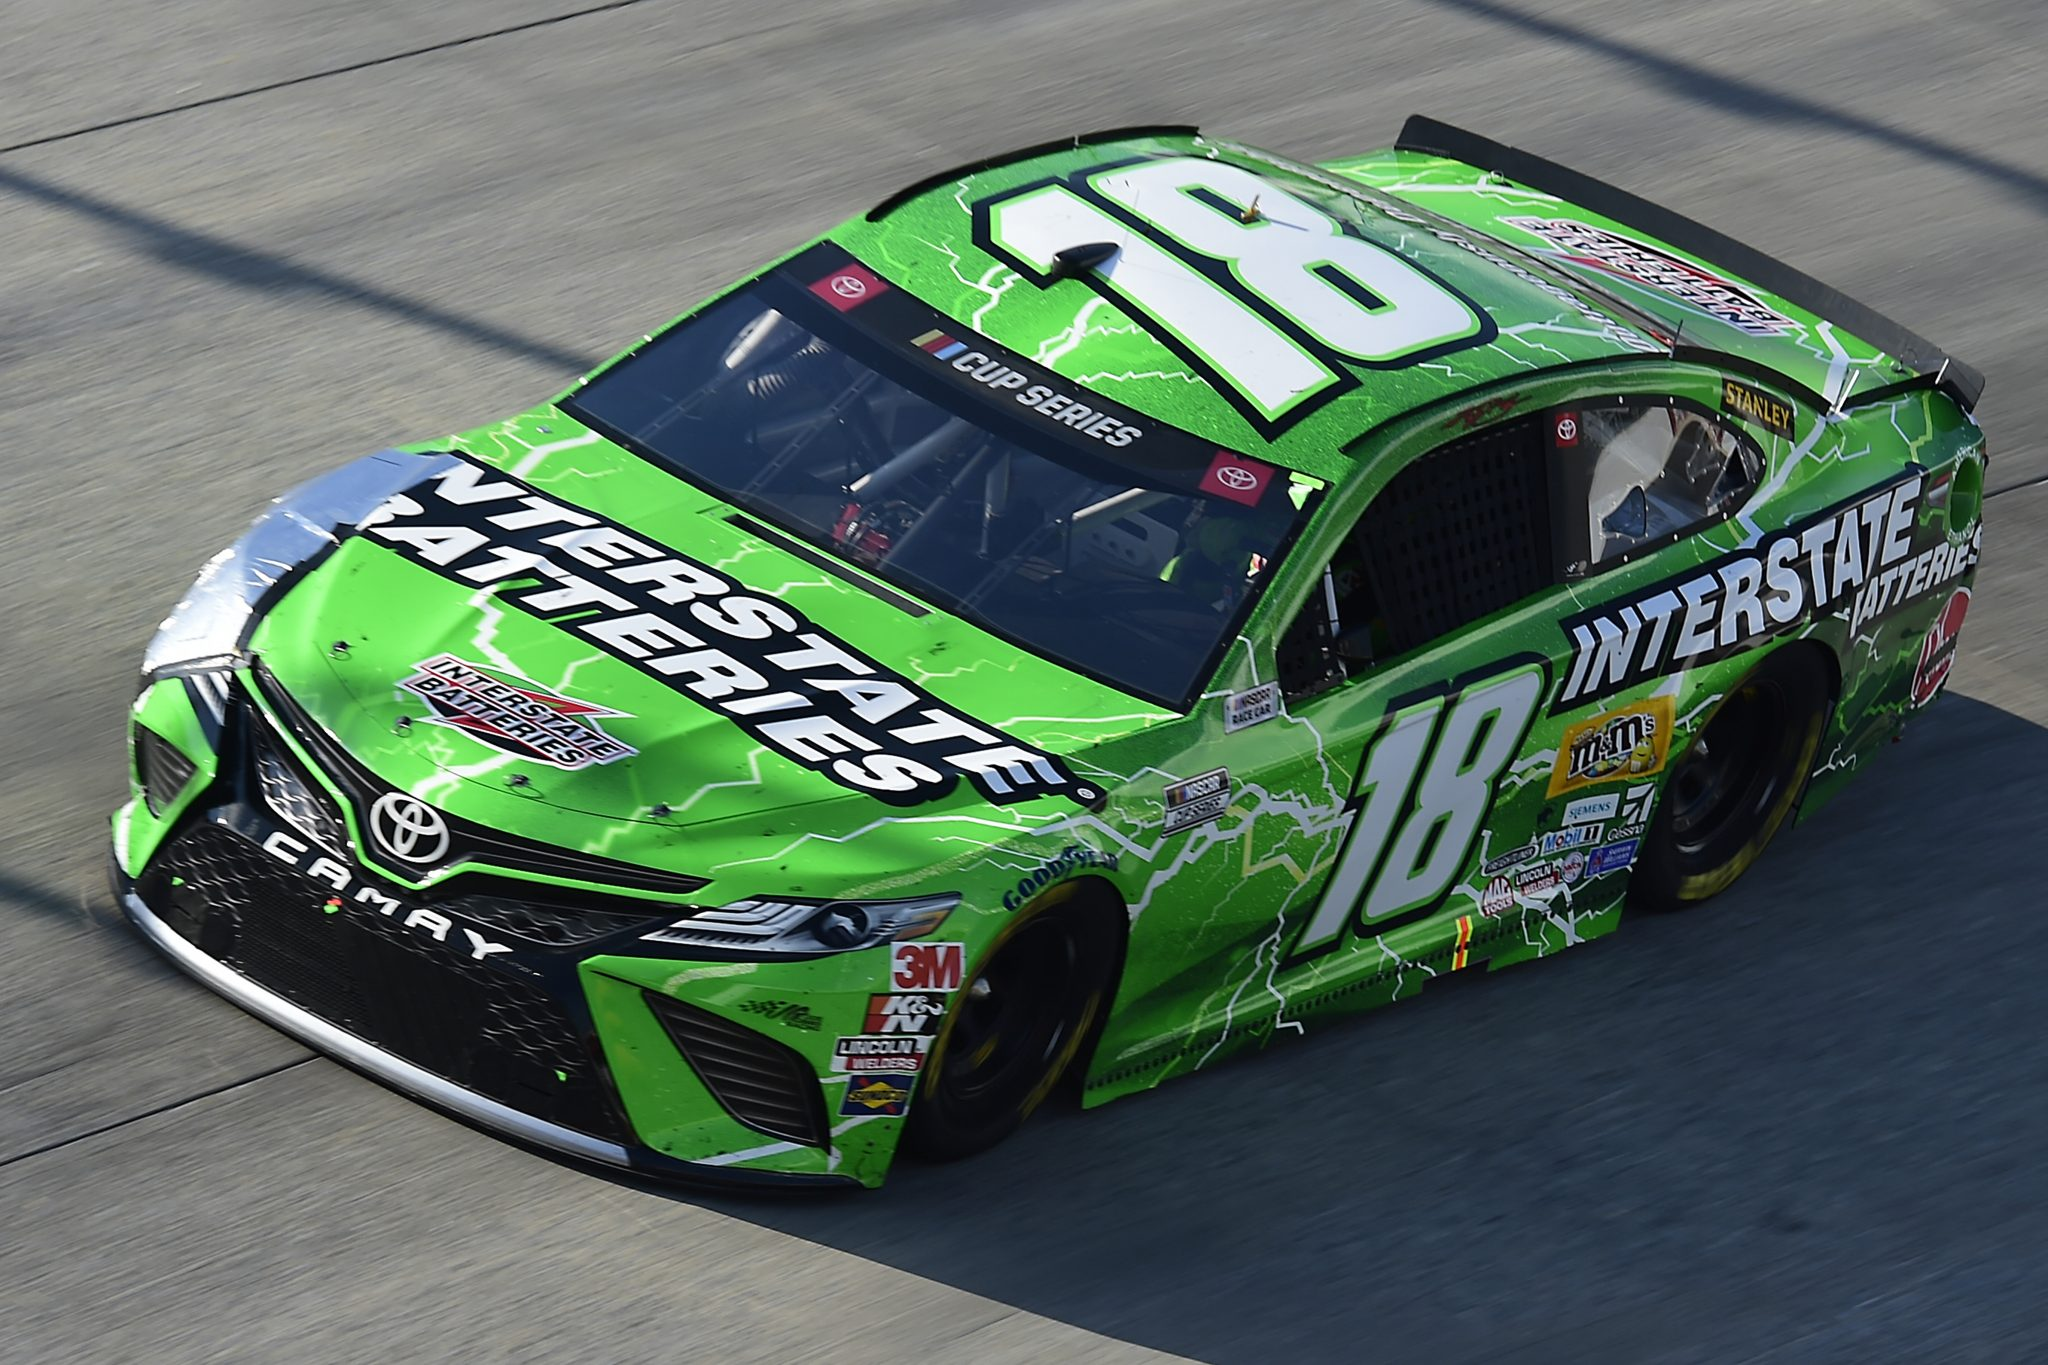 DOVER, DELAWARE - AUGUST 23: Kyle Busch, driver of the #18 Interstate Batteries Toyota, drives during the NASCAR Cup Series Drydene 311 at Dover International Speedway on August 23, 2020 in Dover, Delaware. (Photo by Jared C. Tilton/Getty Images) | Getty Images